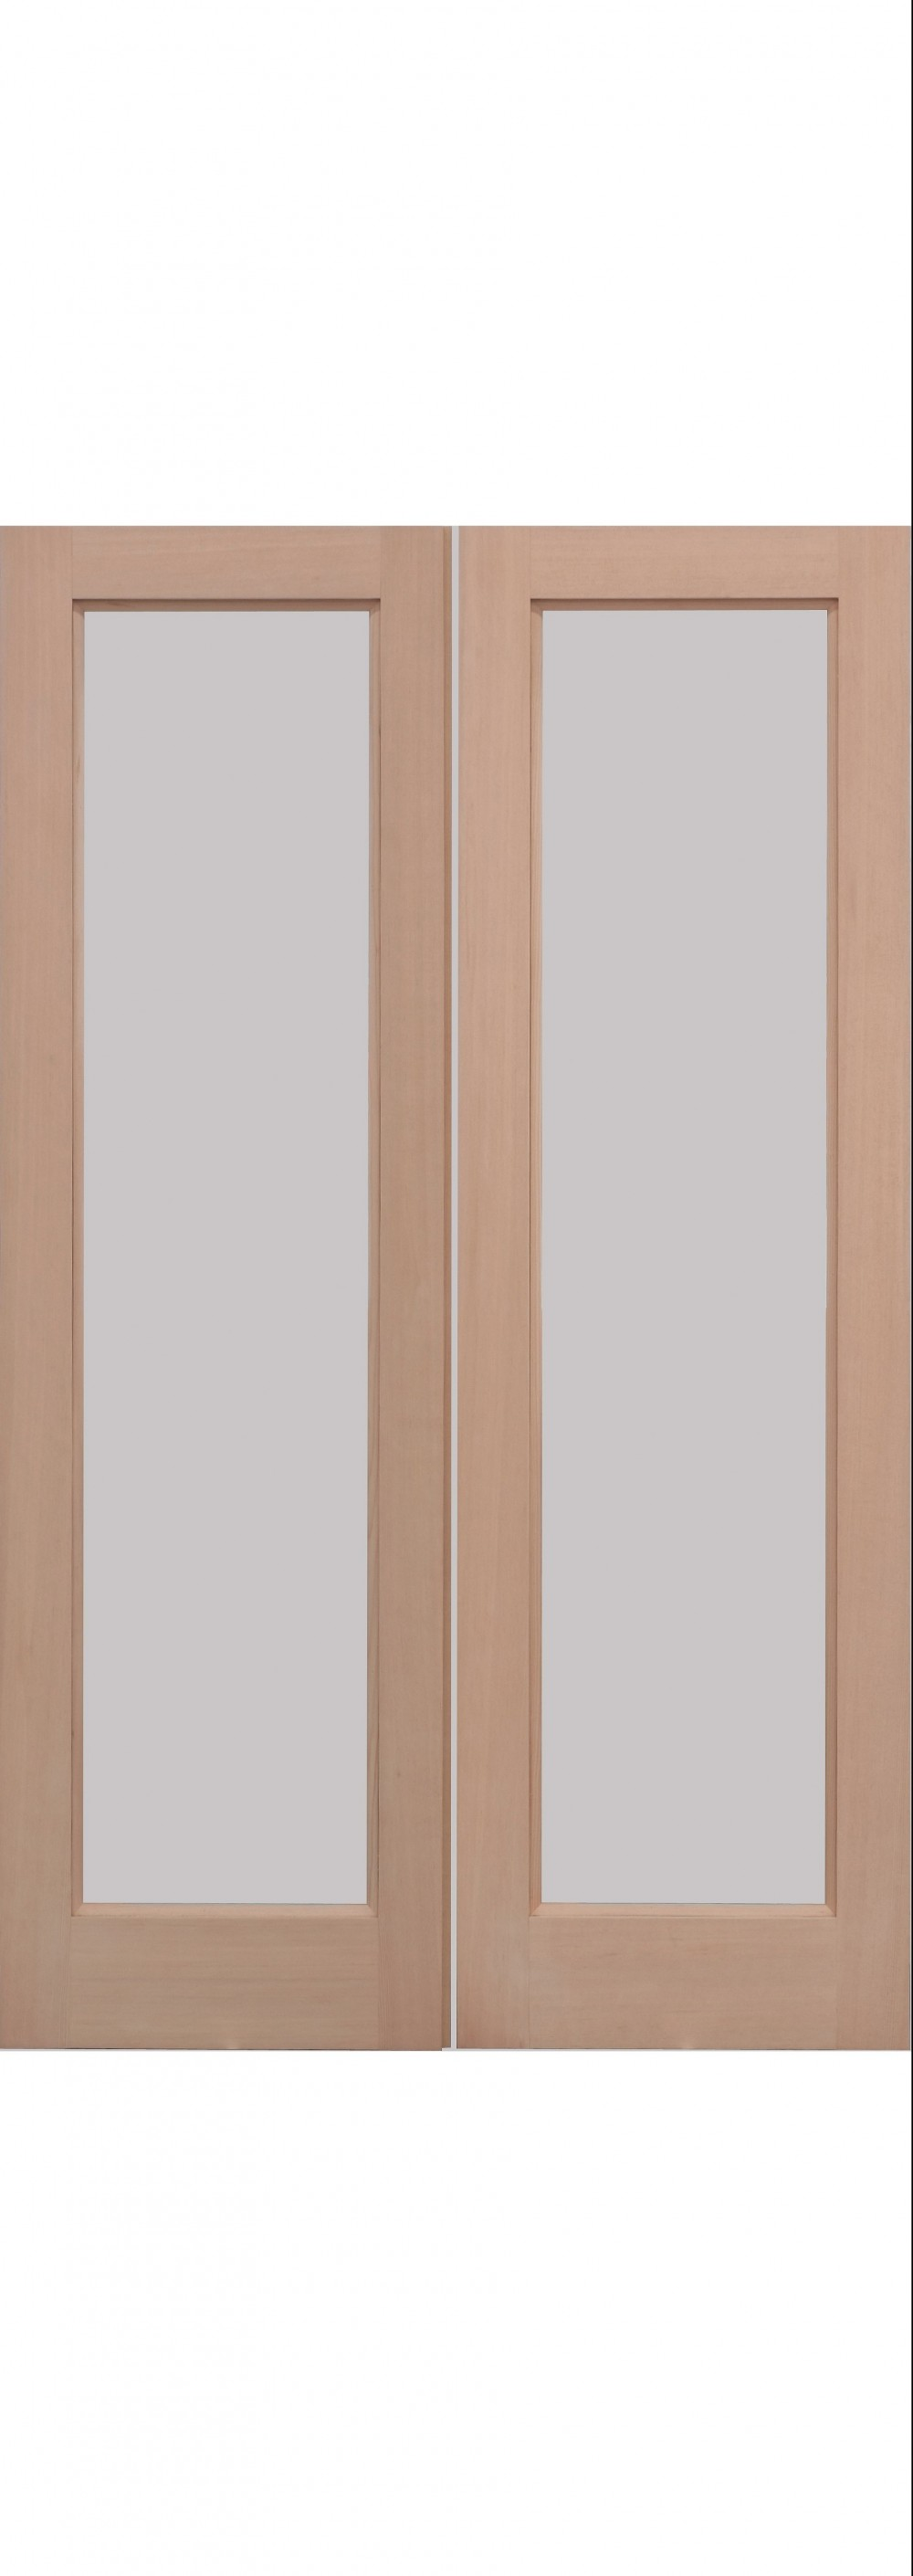 Hemlock pattern 20 external door pair trading doors for Design patterns of doors